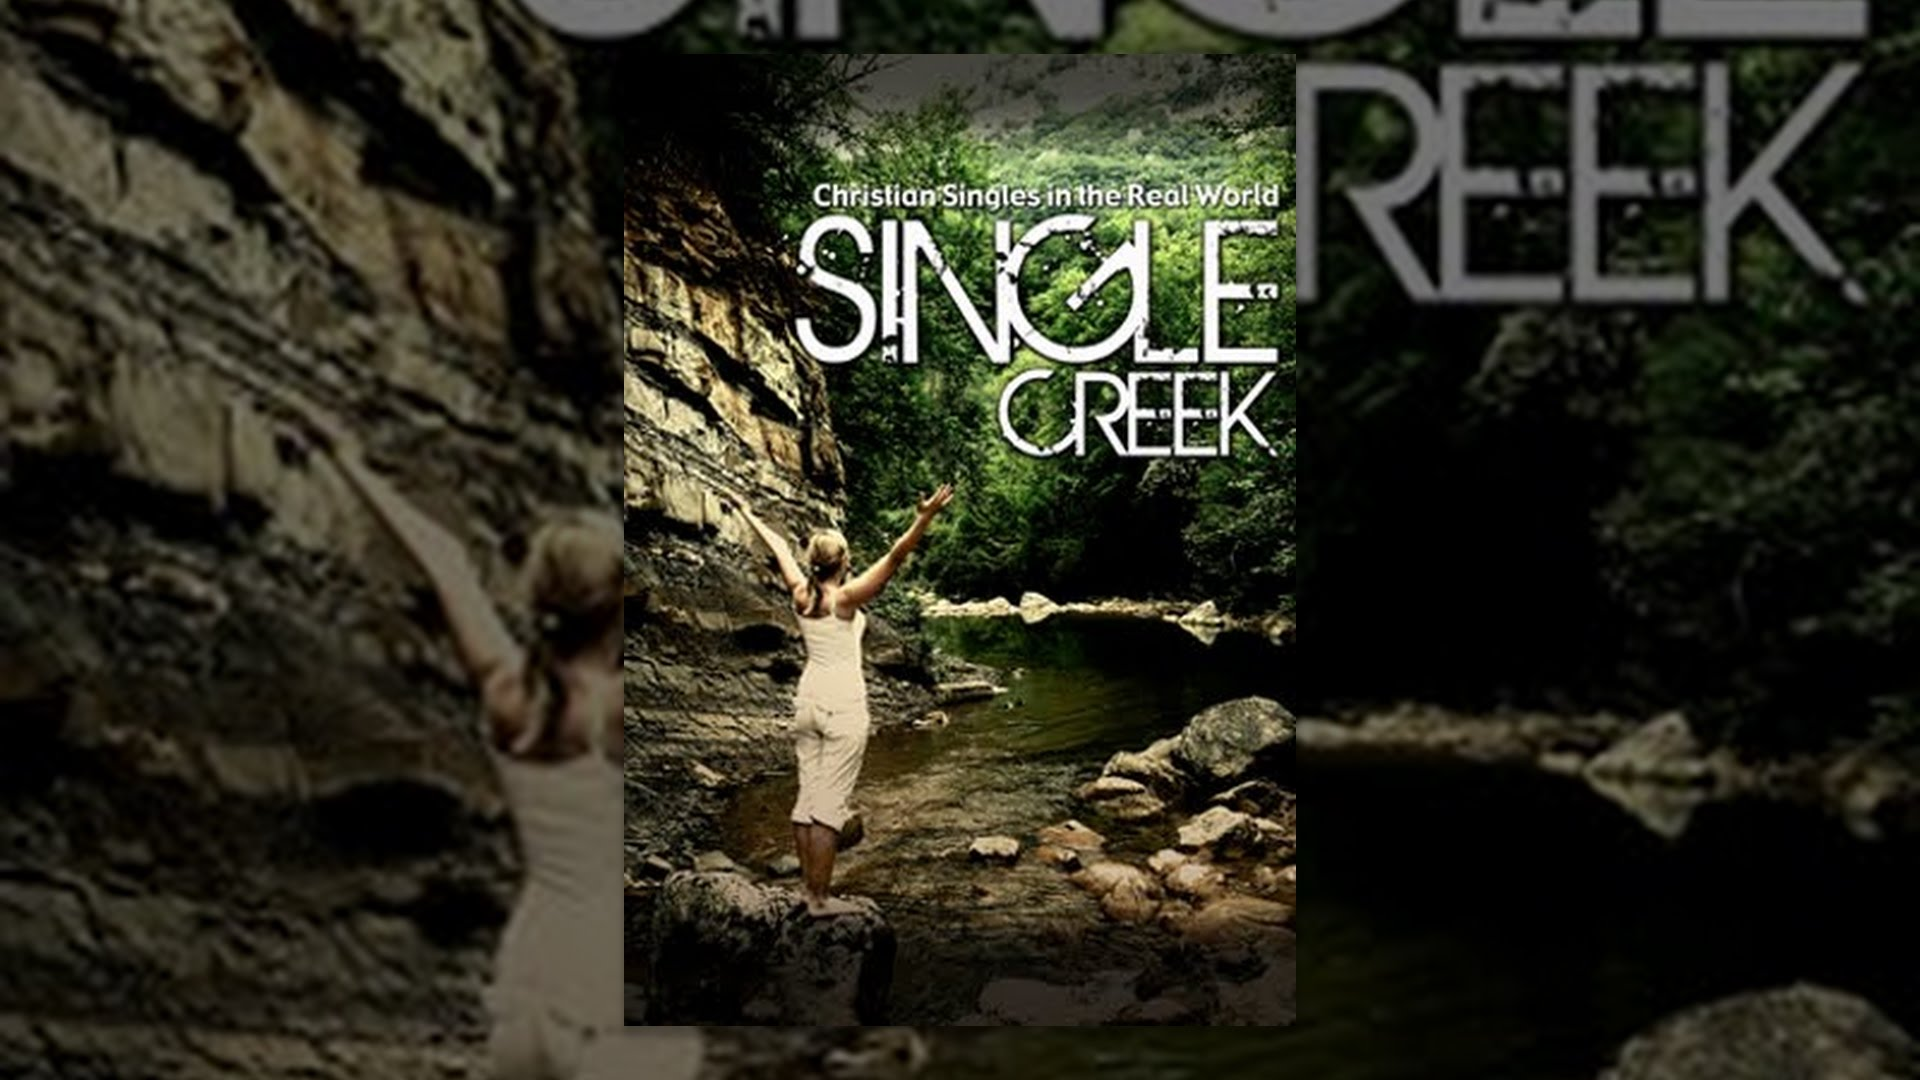 blue creek christian single women Find meetups in mill creek, washington about singles and meet people in your local community who share your interests.